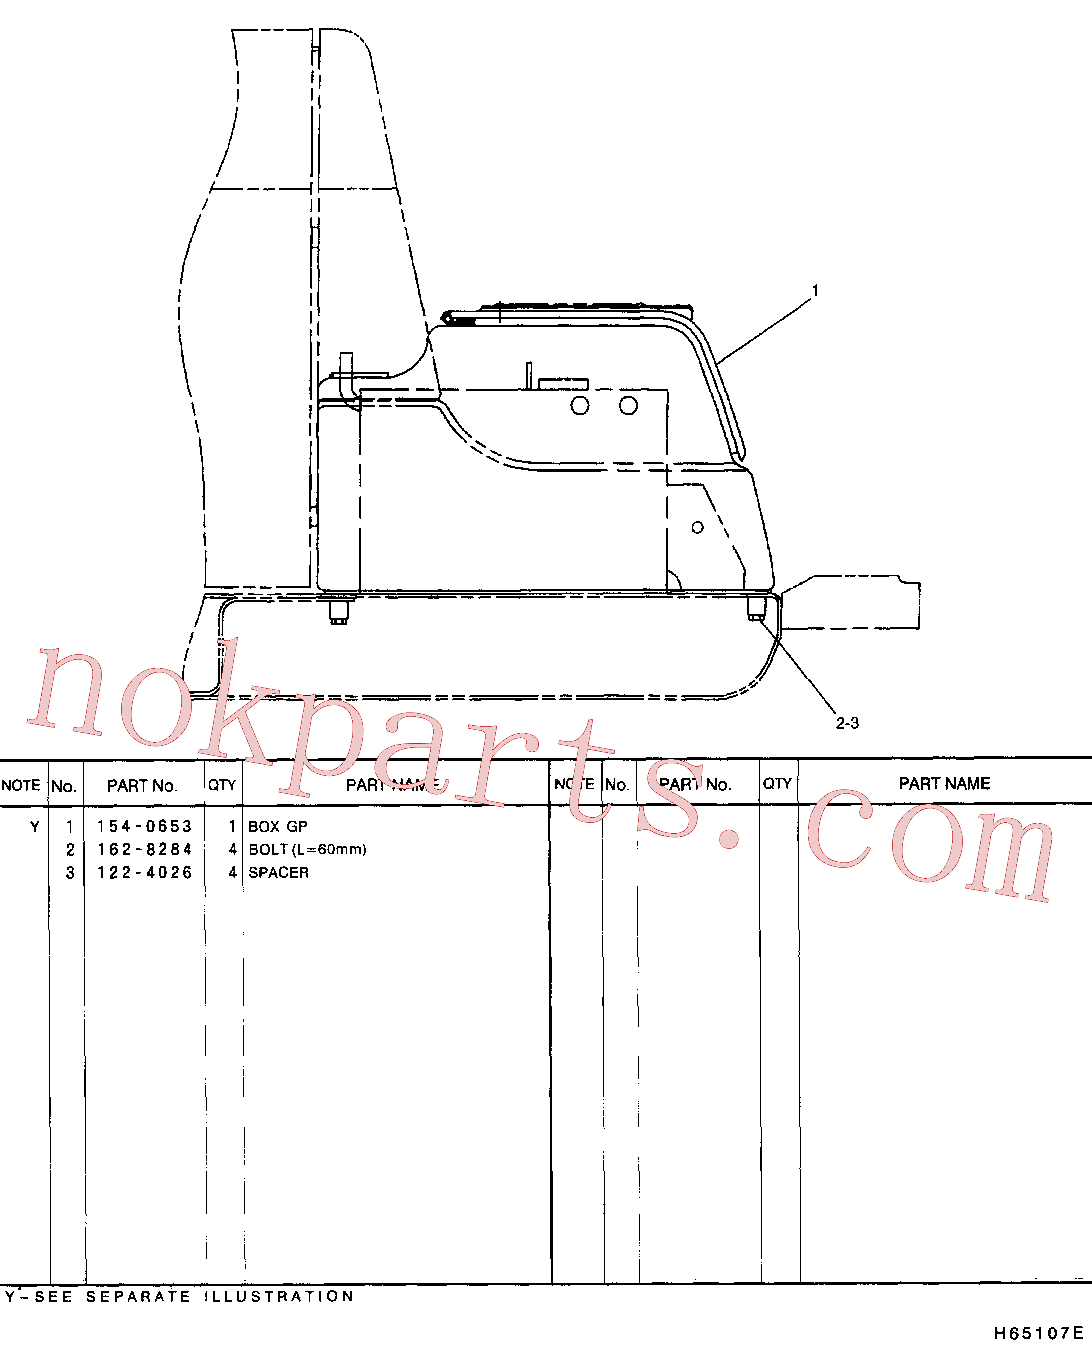 CAT 122-4026 for 312B Excavator(EXC) frame and body 121-9101 Assembly